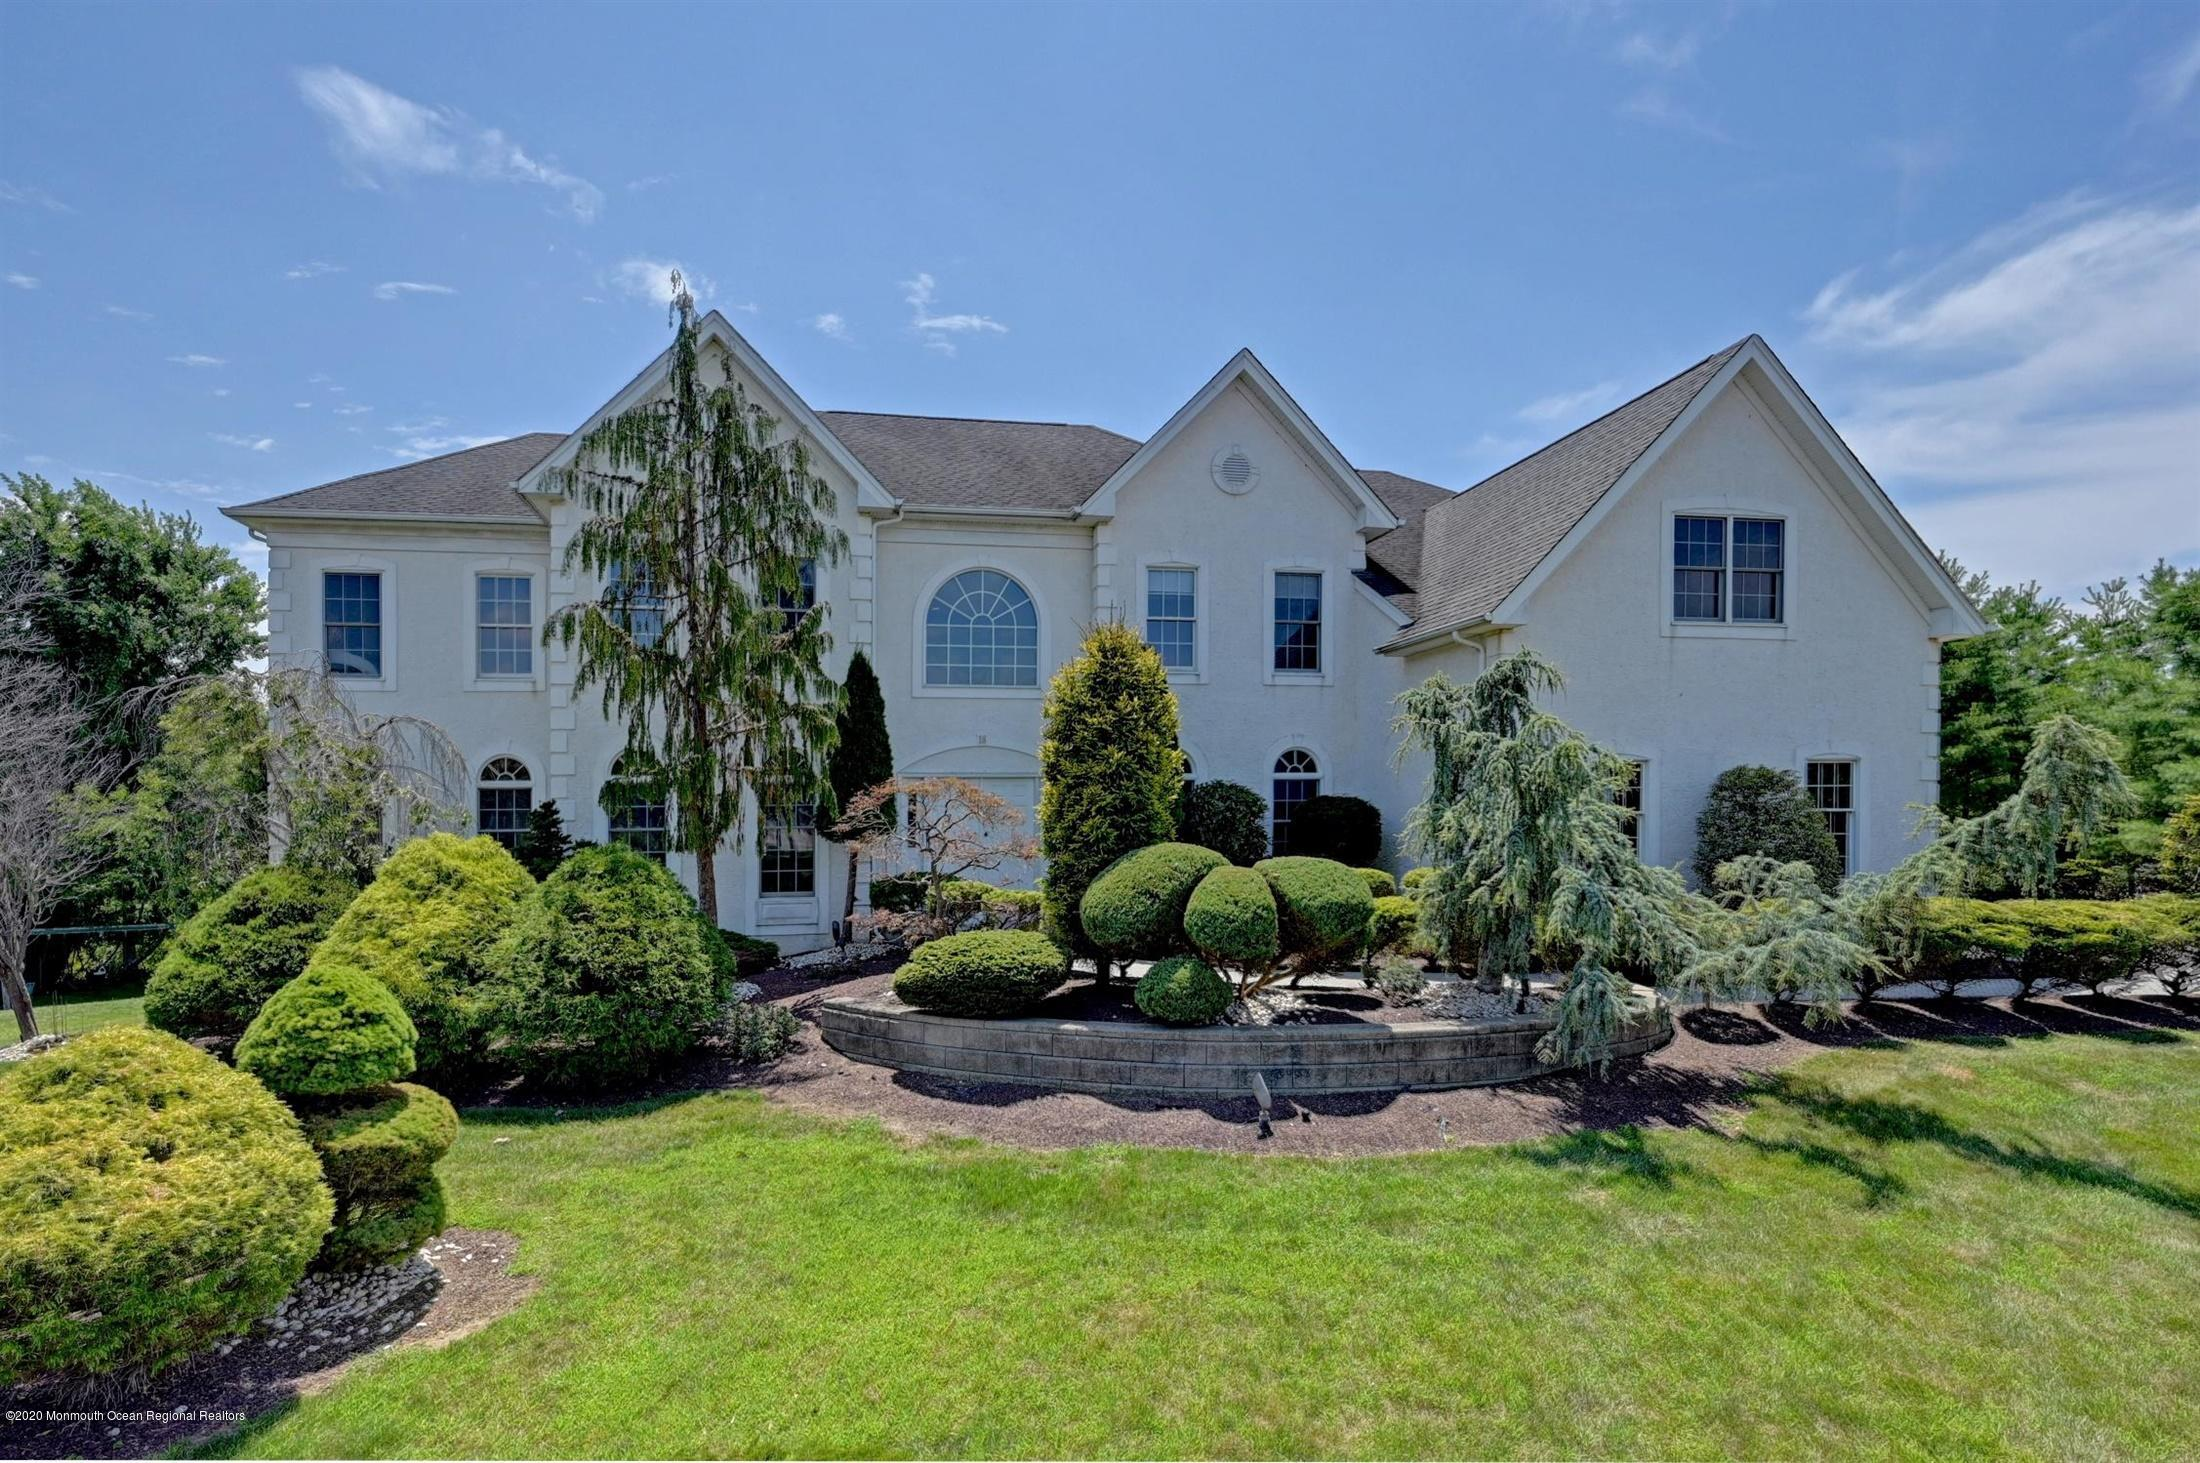 18  Clymer Court,  Marlboro, NJ